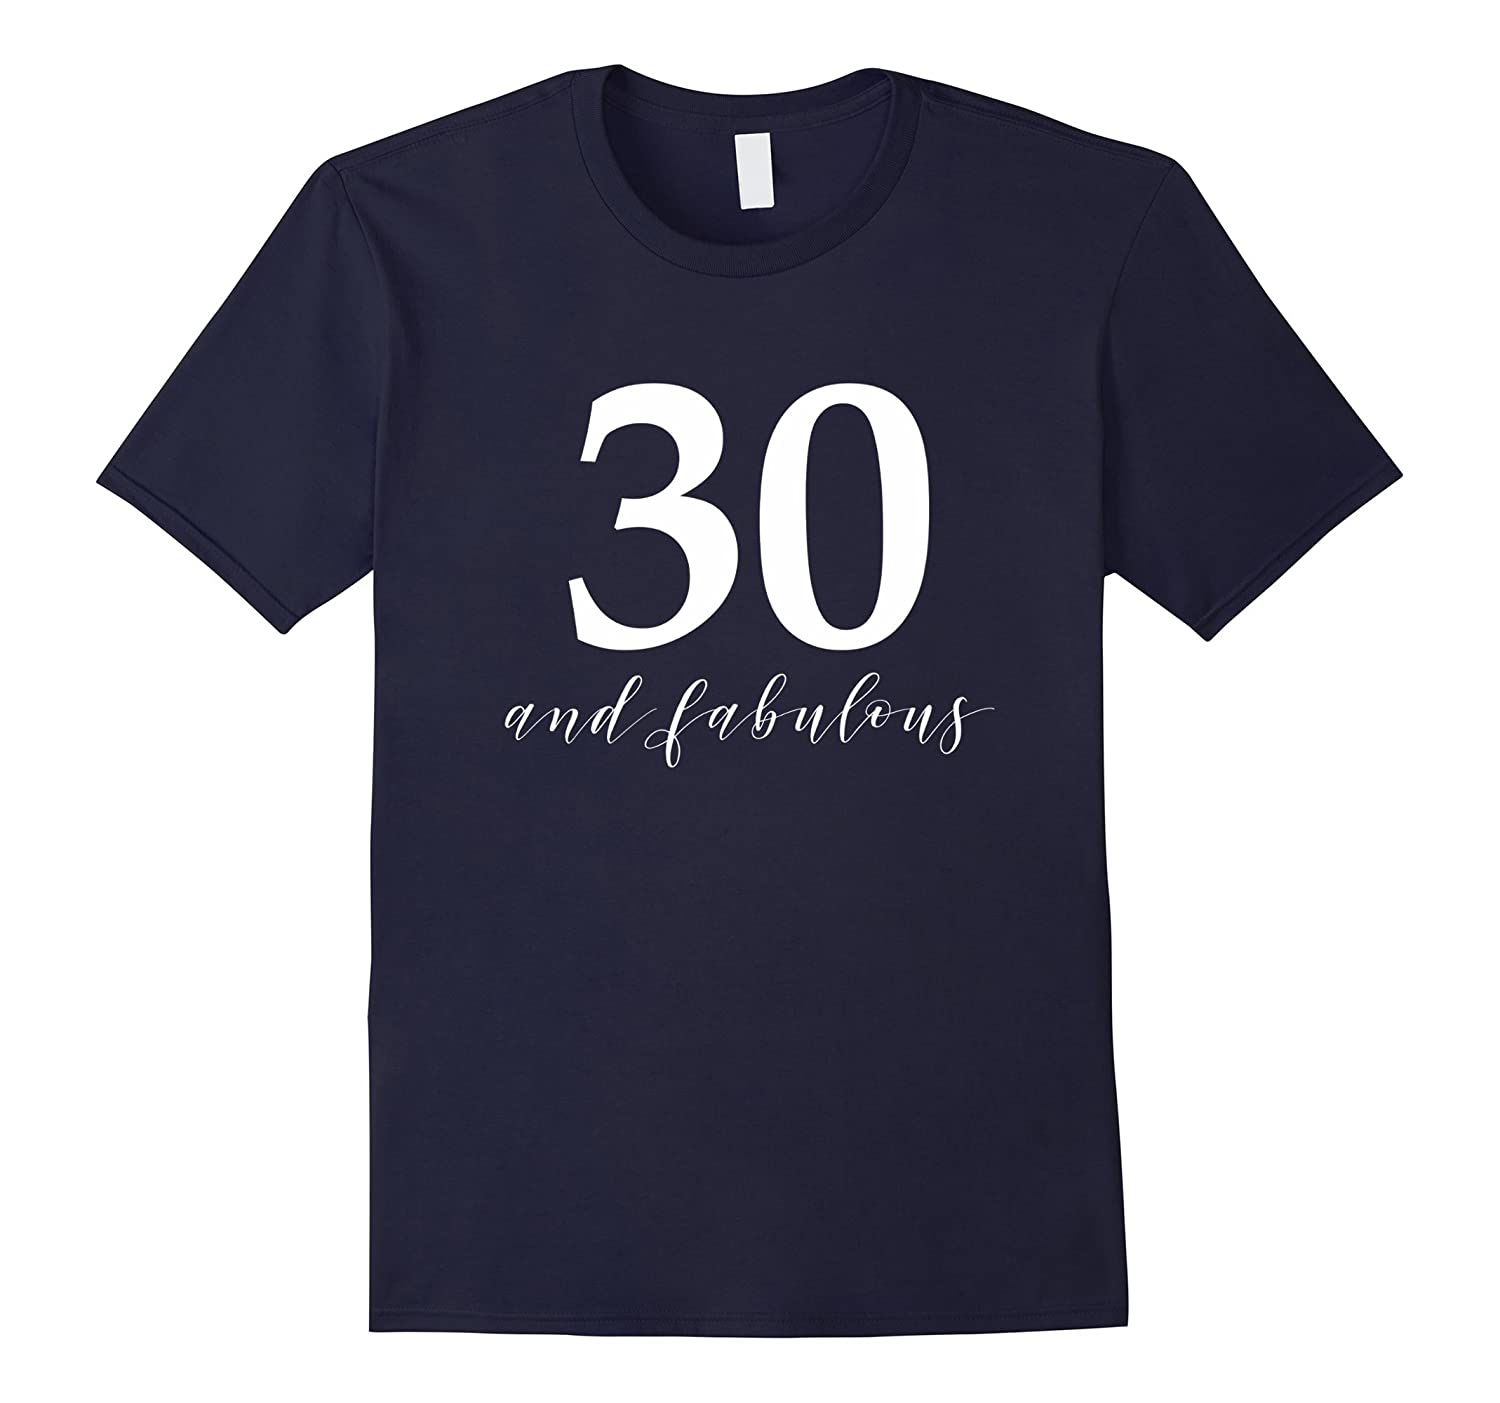 30 and Fabulous- 30th Birthday Shirt for Women-TD